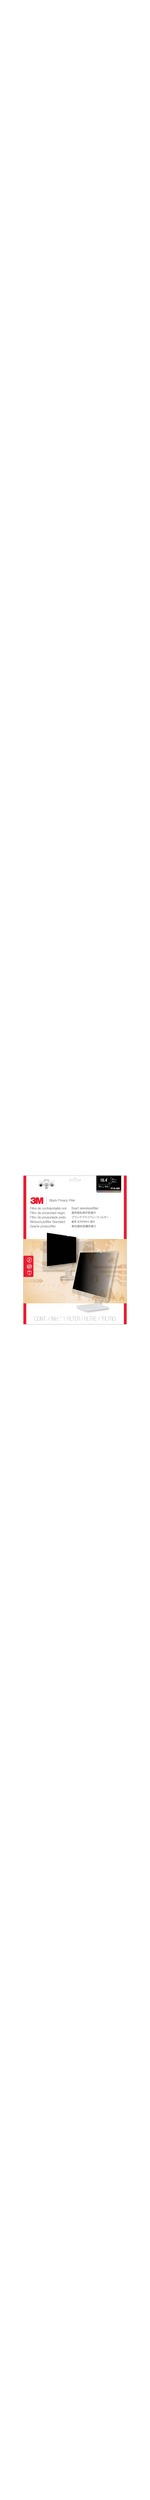 3M PF18.4W9 Matte Privacy Screen Filter - For 46.7 cm 18.4And#34; Widescreen Monitor